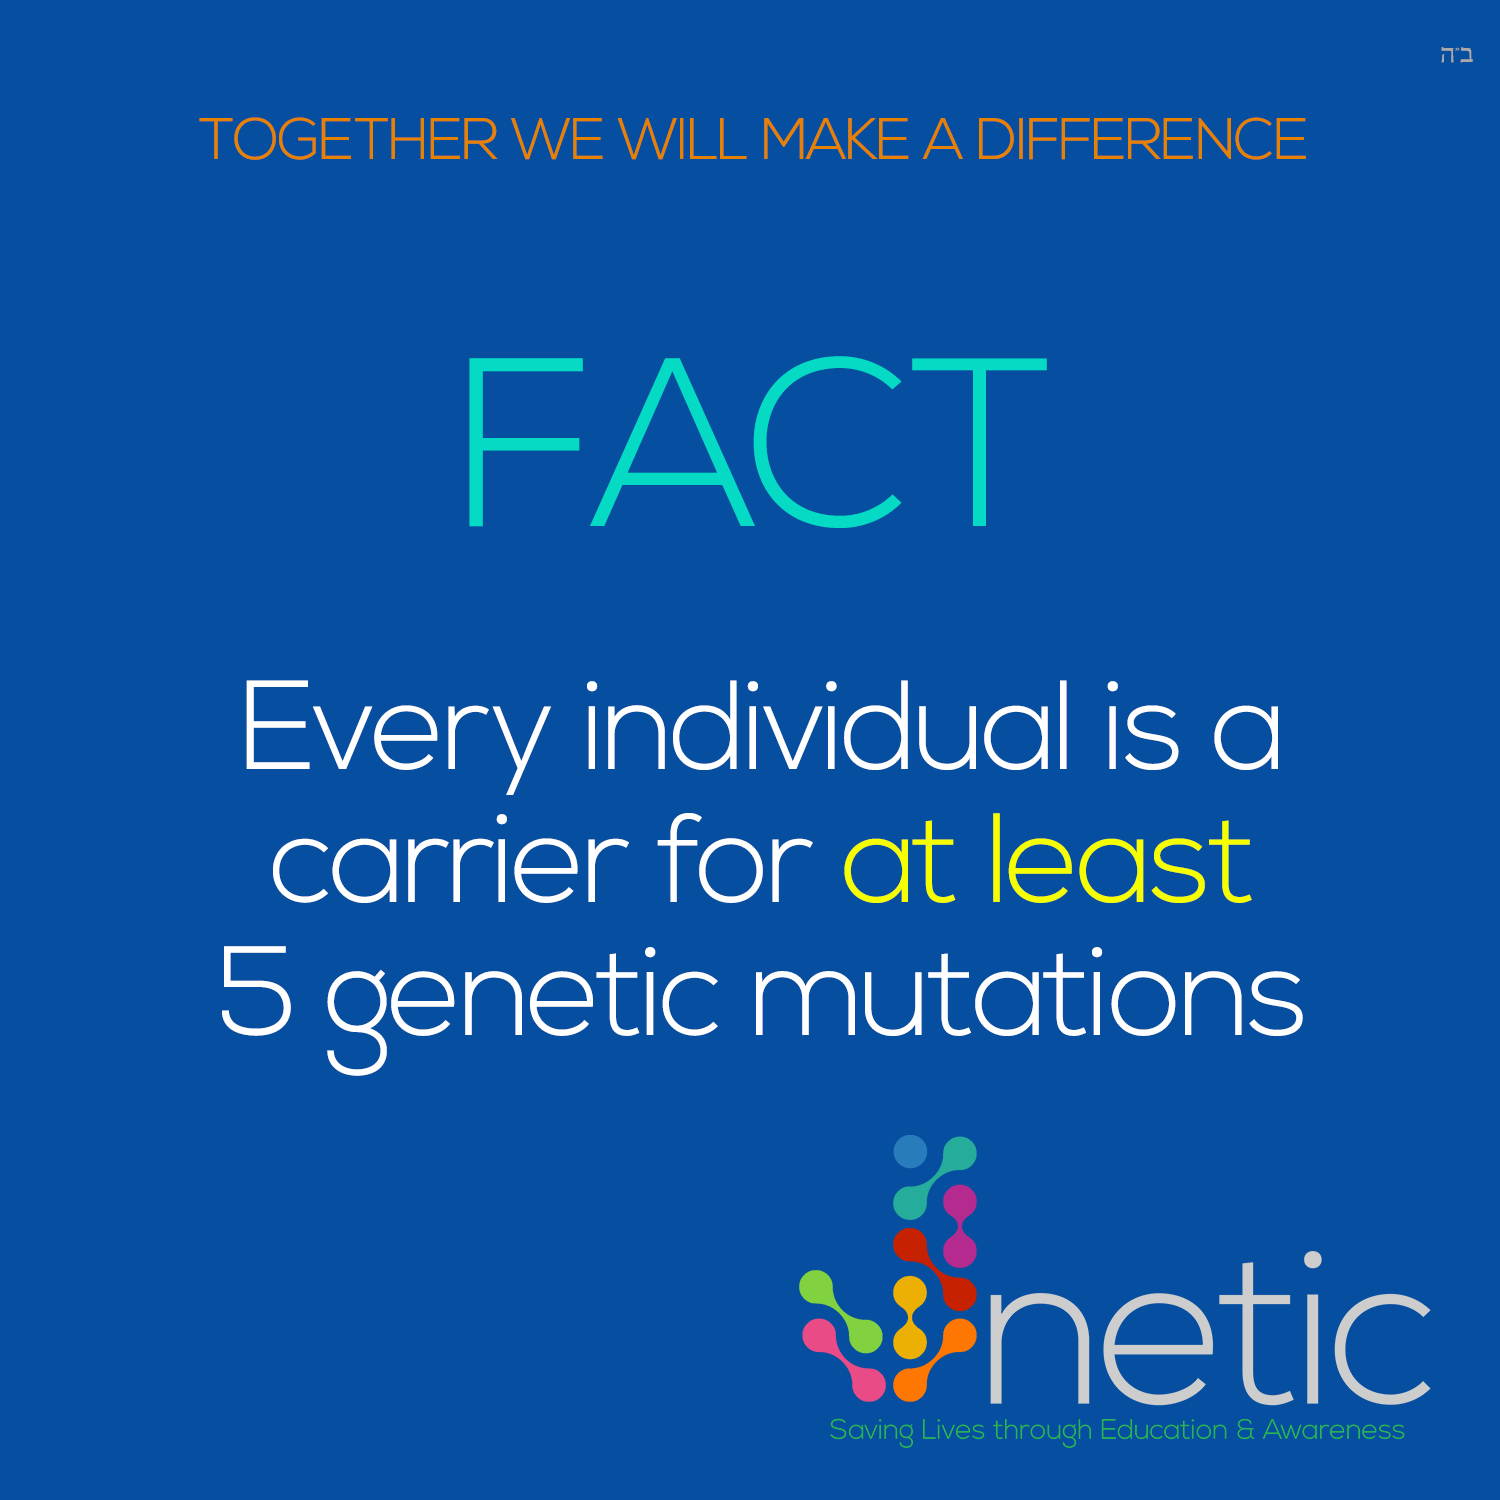 Genetic Fact - Every individual is a carrier for 5 genetic mutations